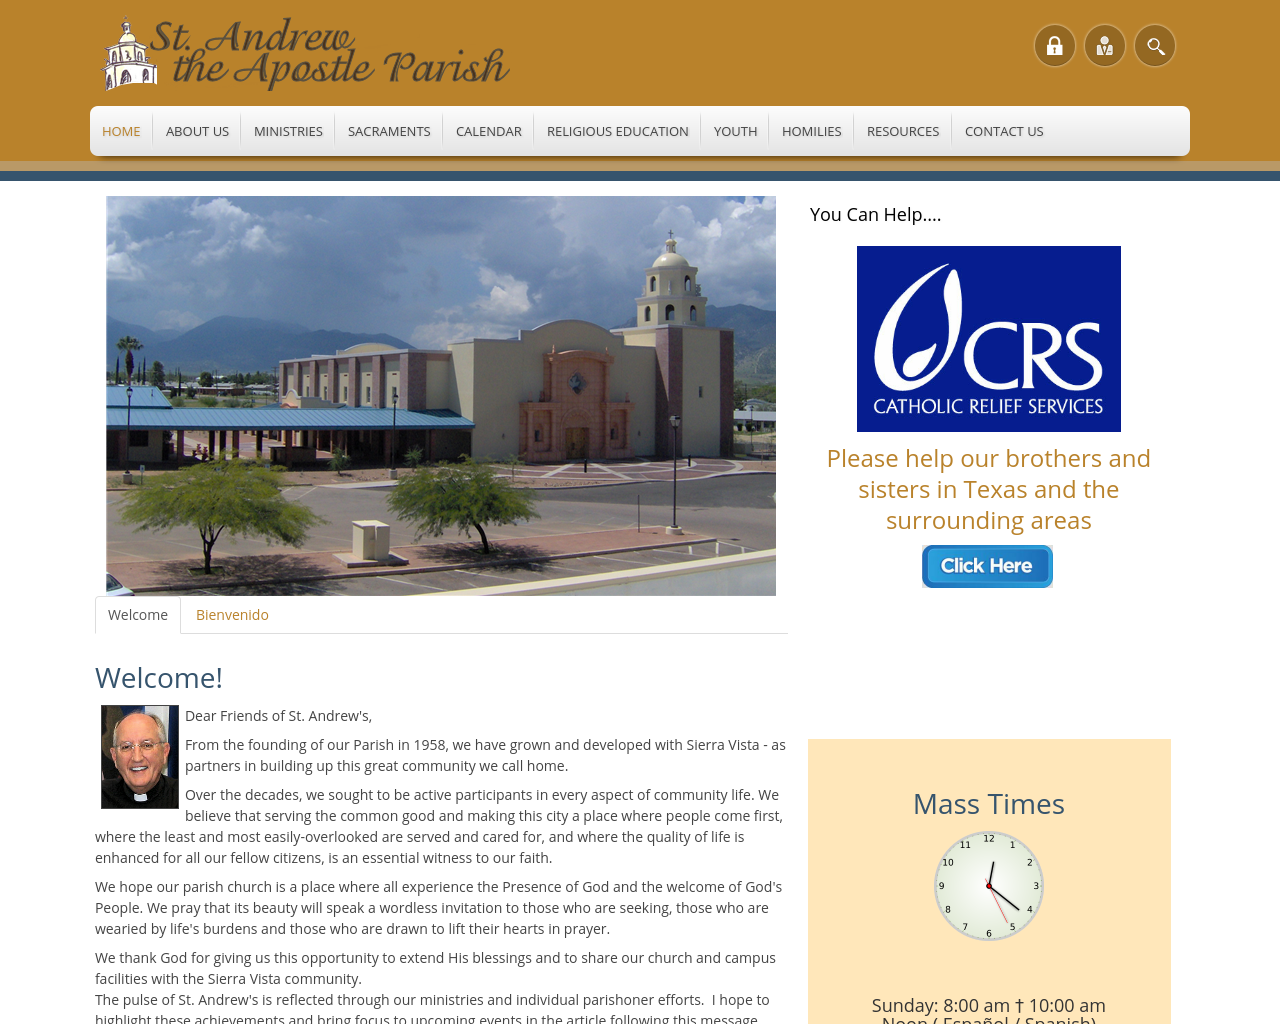 St.-Andrew-The-Apostle-Parish-Advertising-Reviews-Pricing